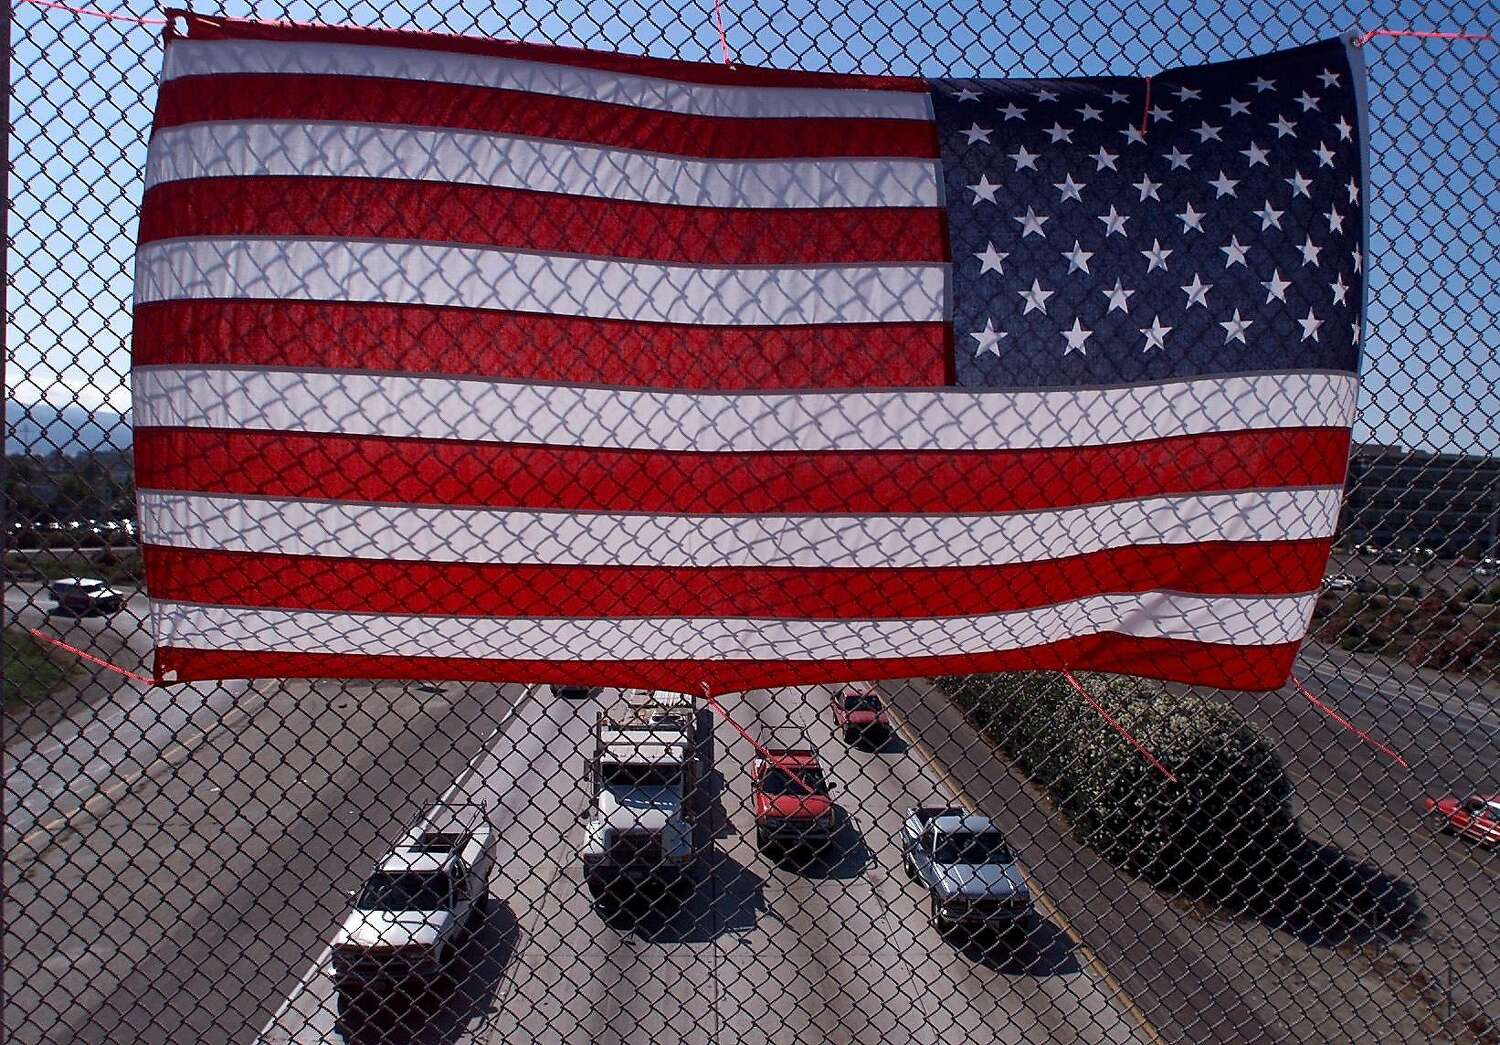 An American flag is strung to a chainlink fence along Santa Rita Rd. above the I-580 in Pleasanton.